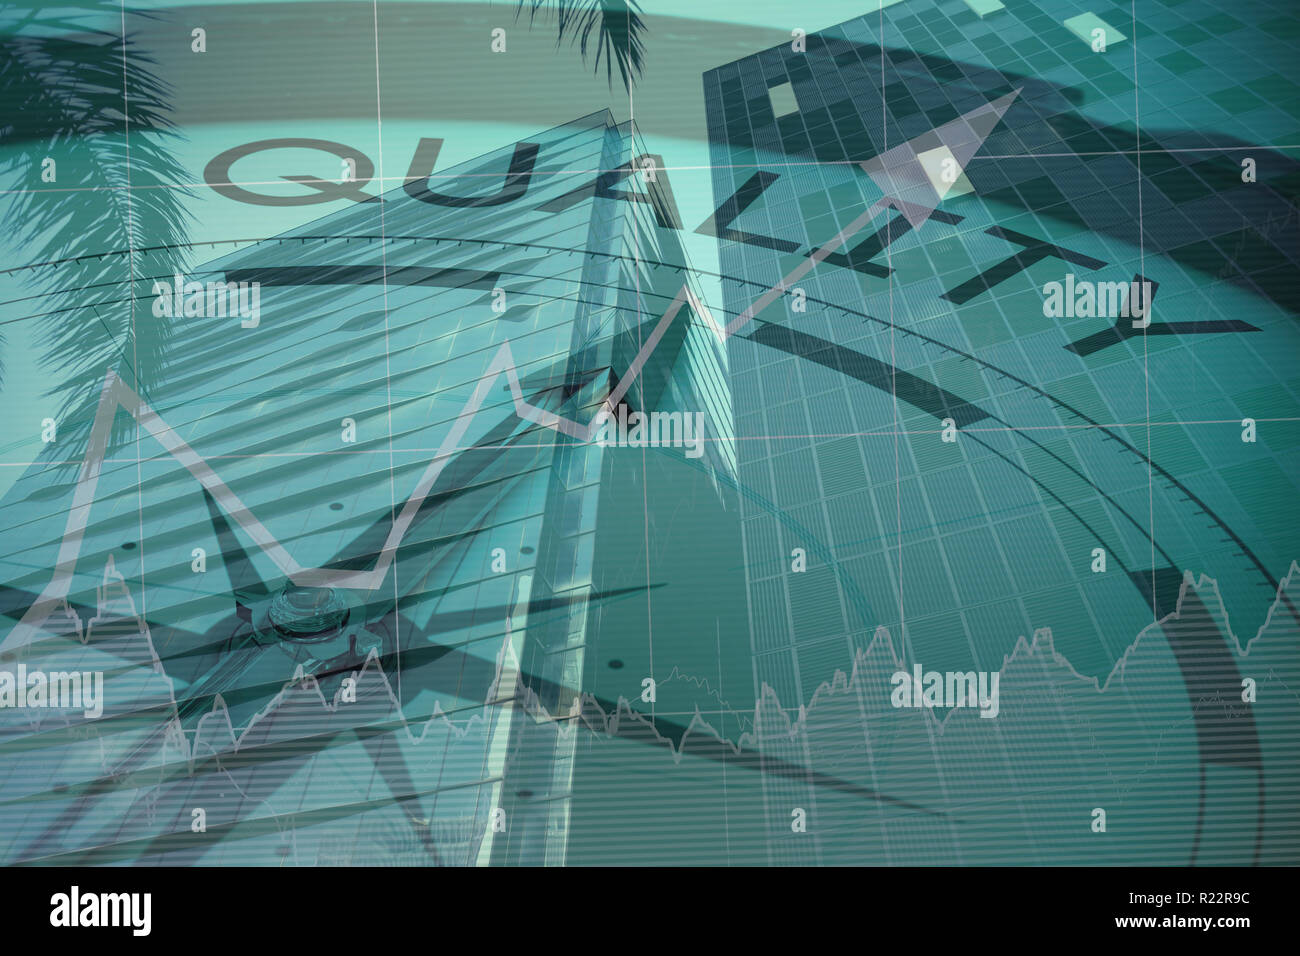 Composite image of quality text with graphs and navigational compass Stock Photo